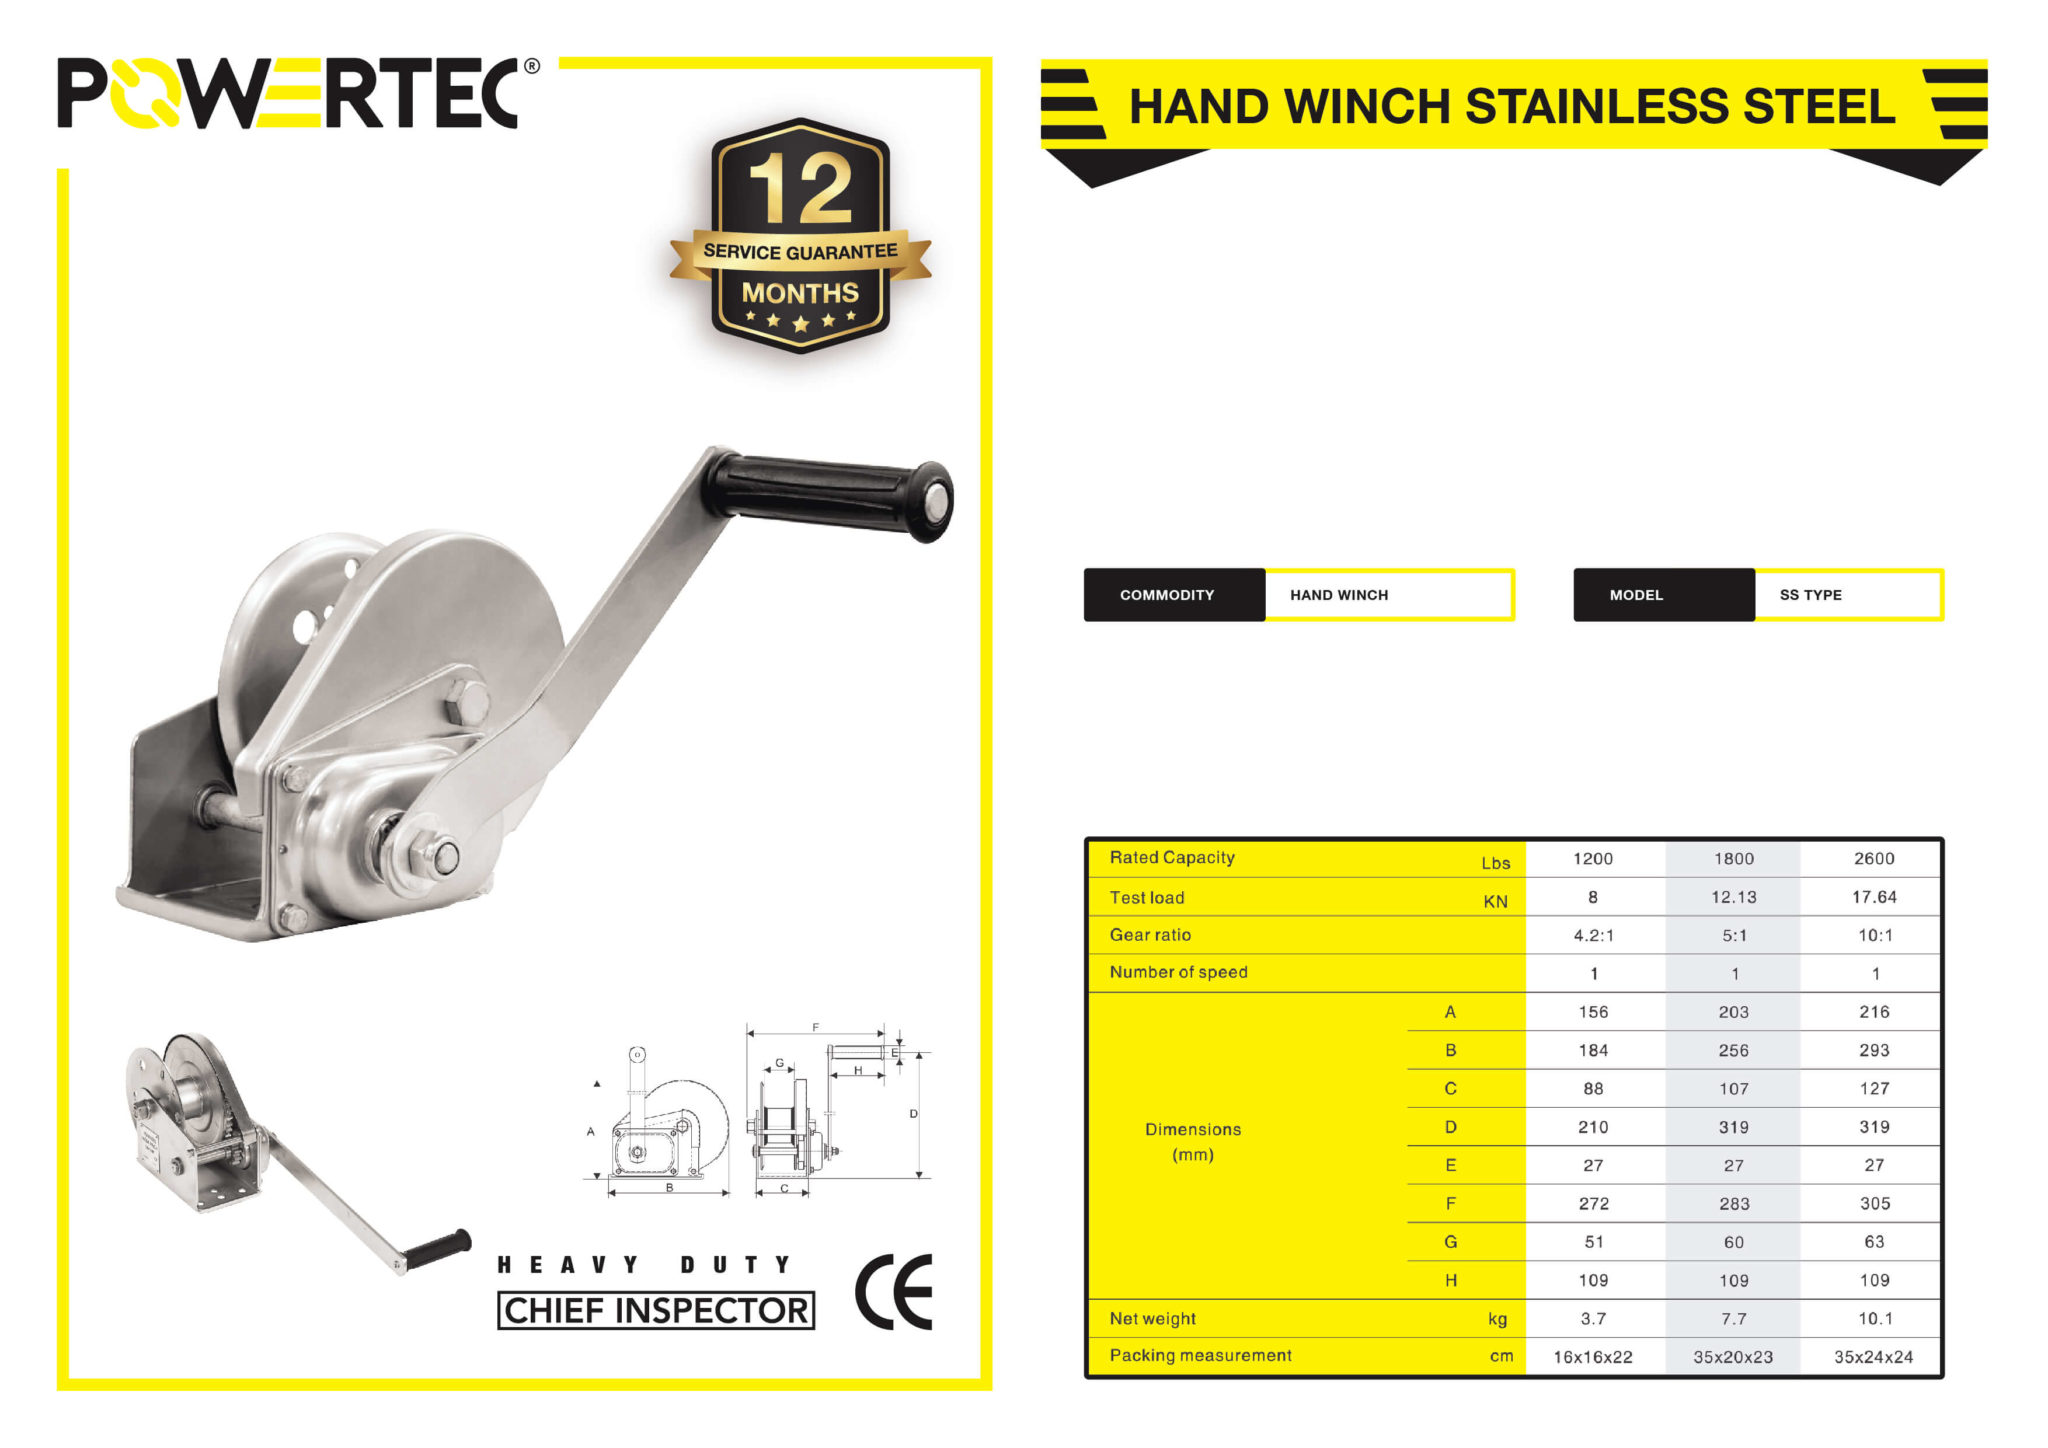 POWERTEC HAND WINCH STAINLESS STEEL BROCHURE